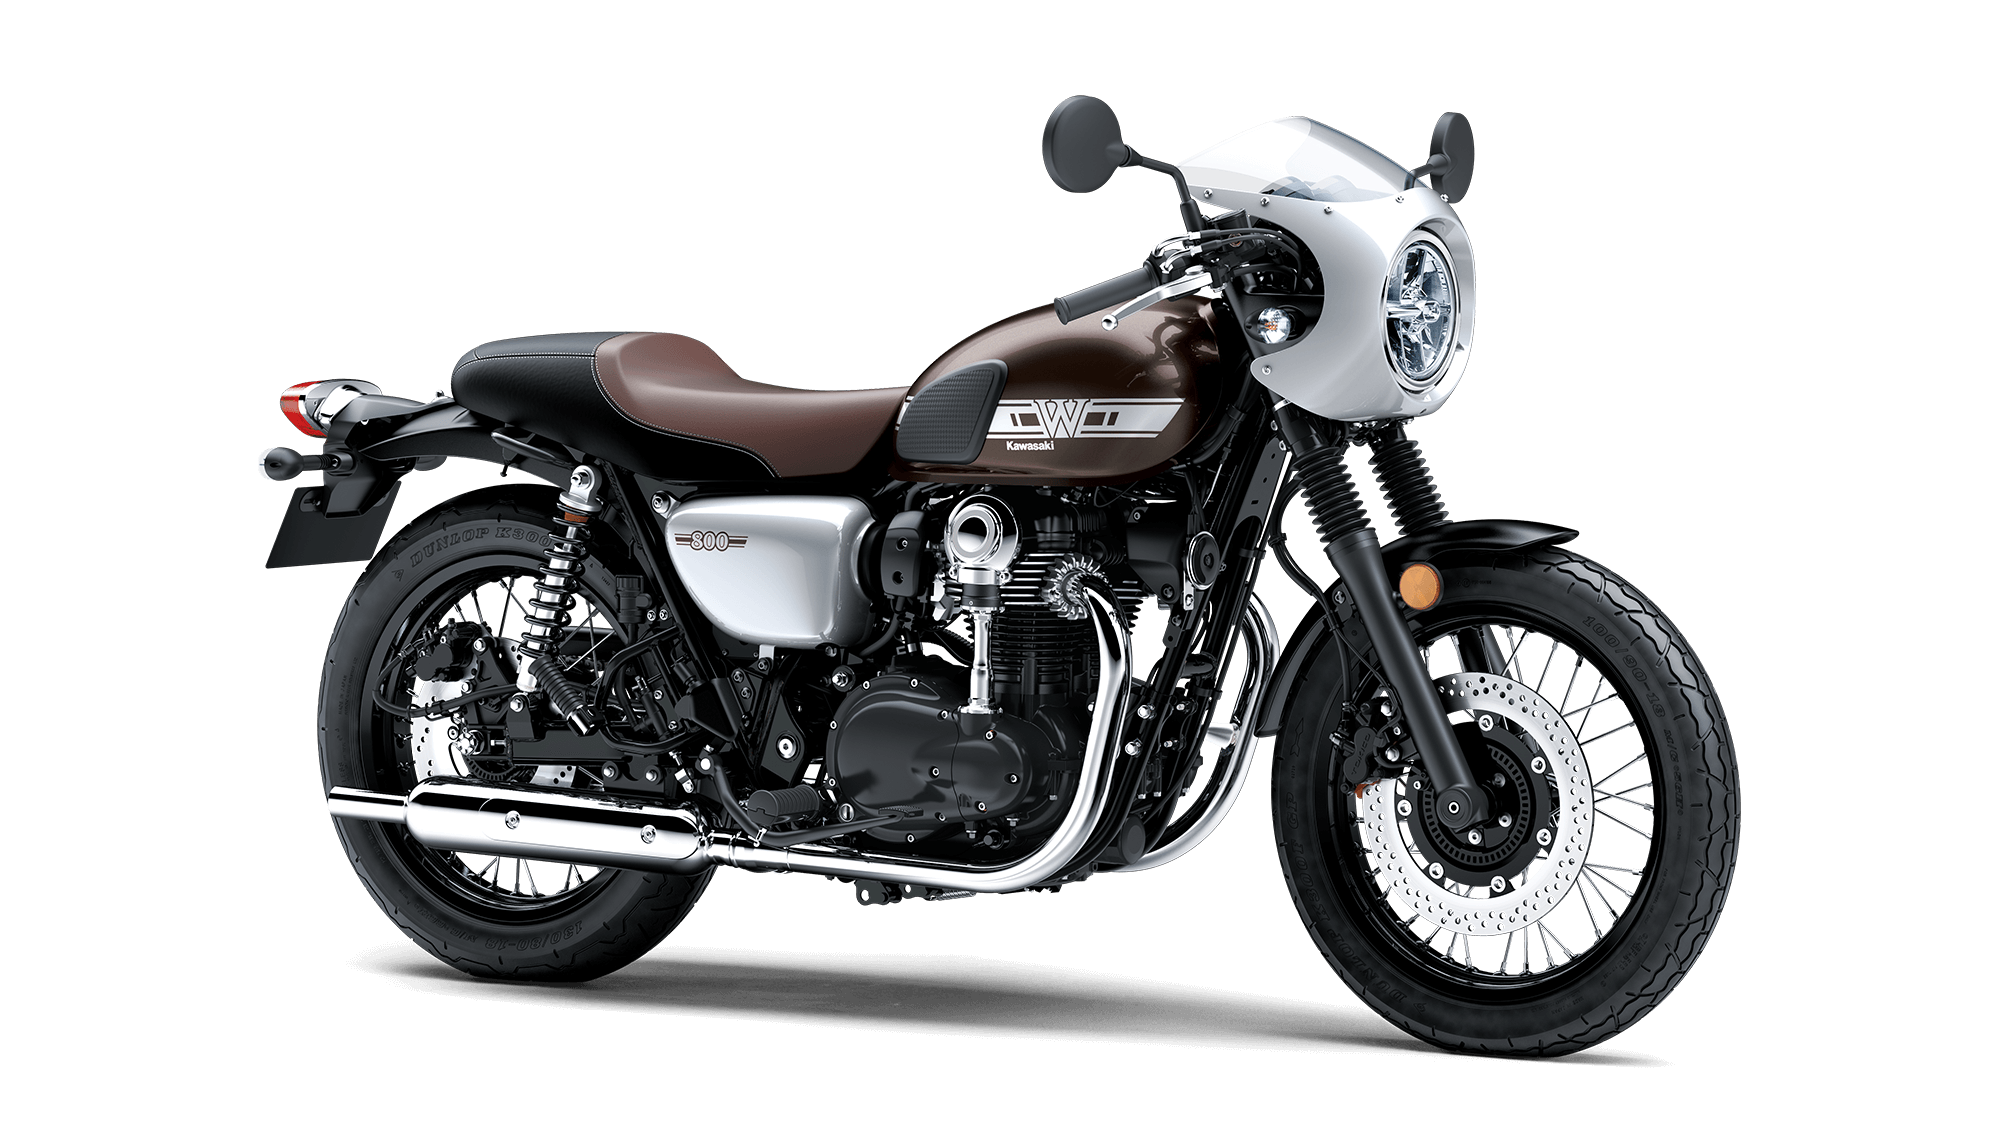 2019 W800 CAFE W Motorcycle By Kawasaki